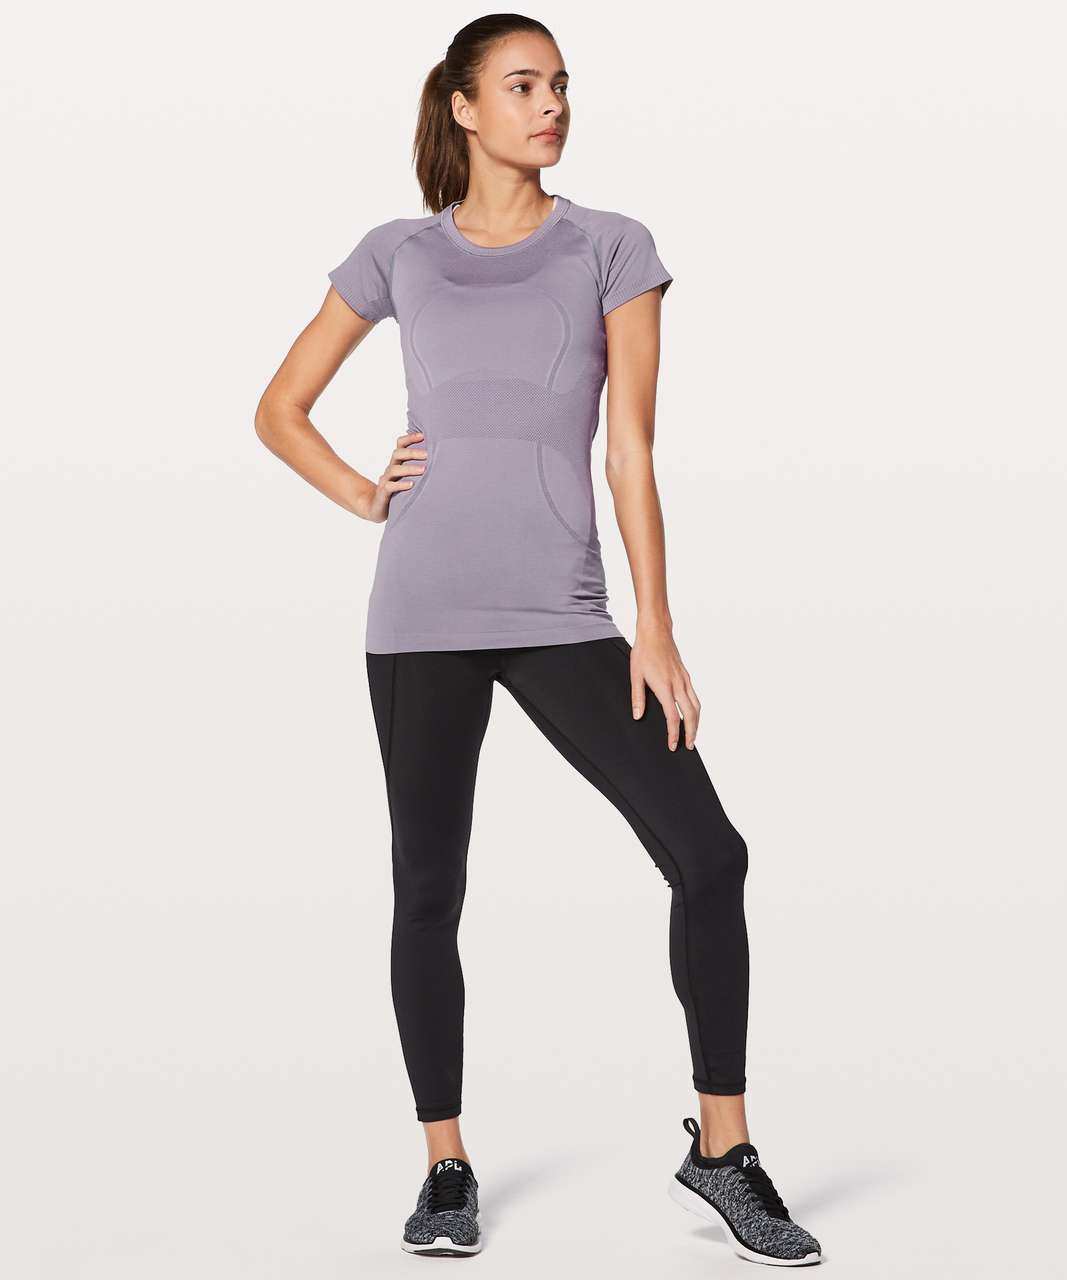 Lululemon Swiftly Tech Short Sleeve Crew - Dusty Dawn / Dusty Dawn